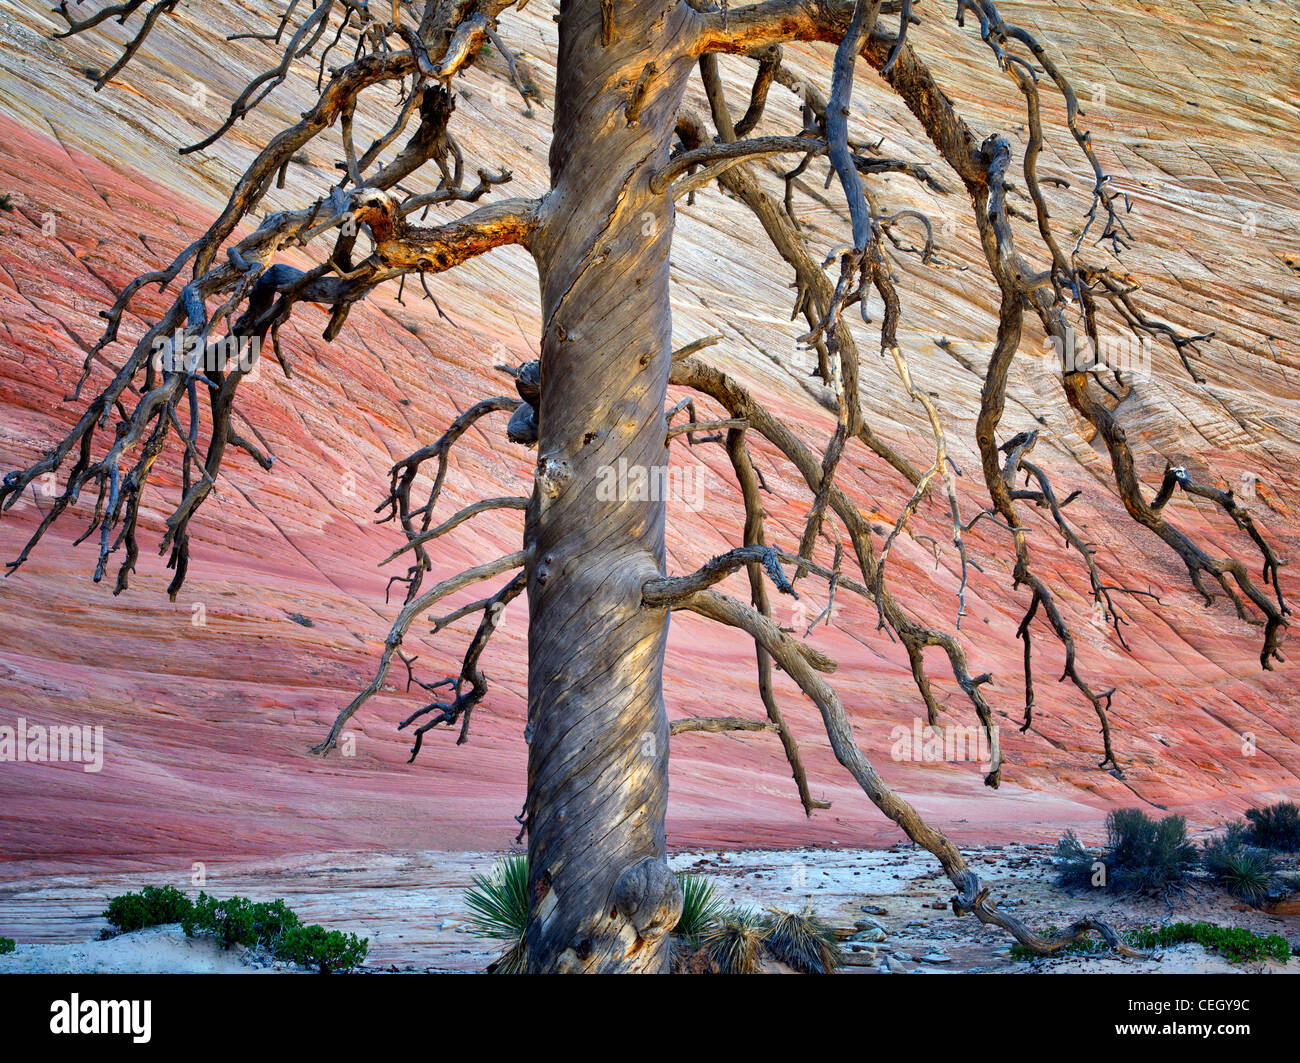 Dead ponderosa pine tree and Checkerboard Mesa. Zion National Park, Utah. - Stock Image